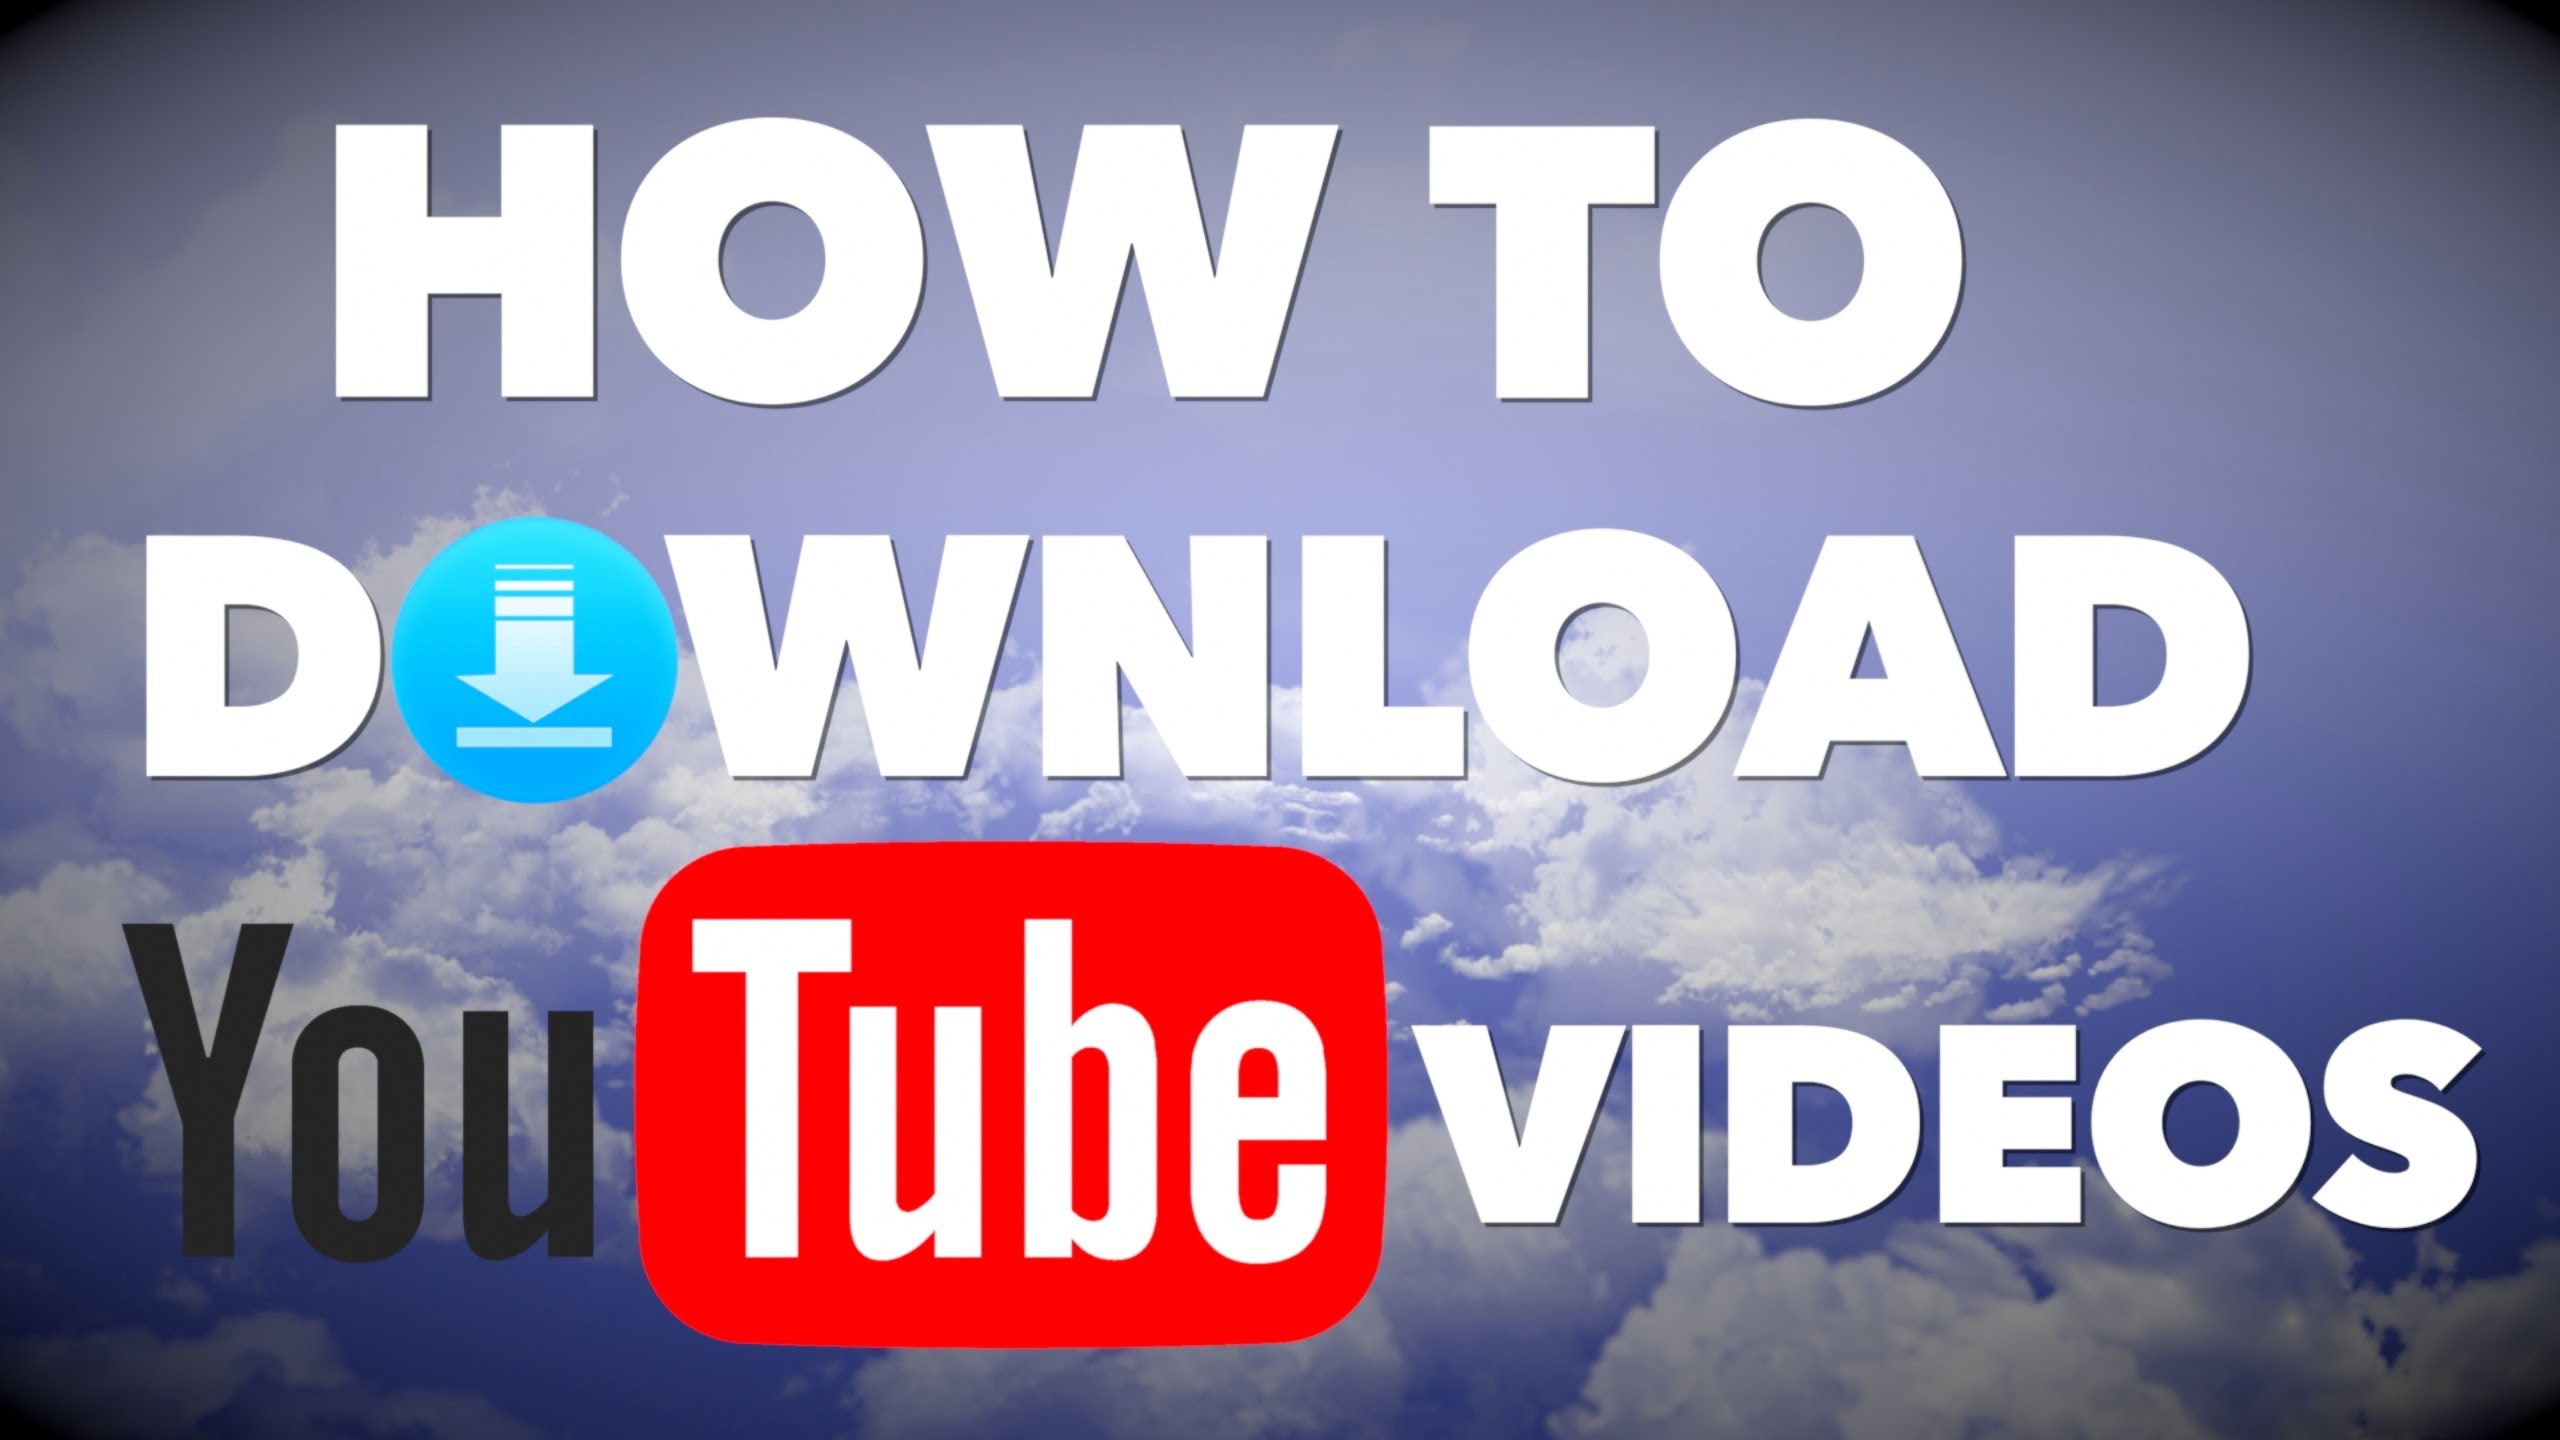 Download youtube videos app for windows | Peatix